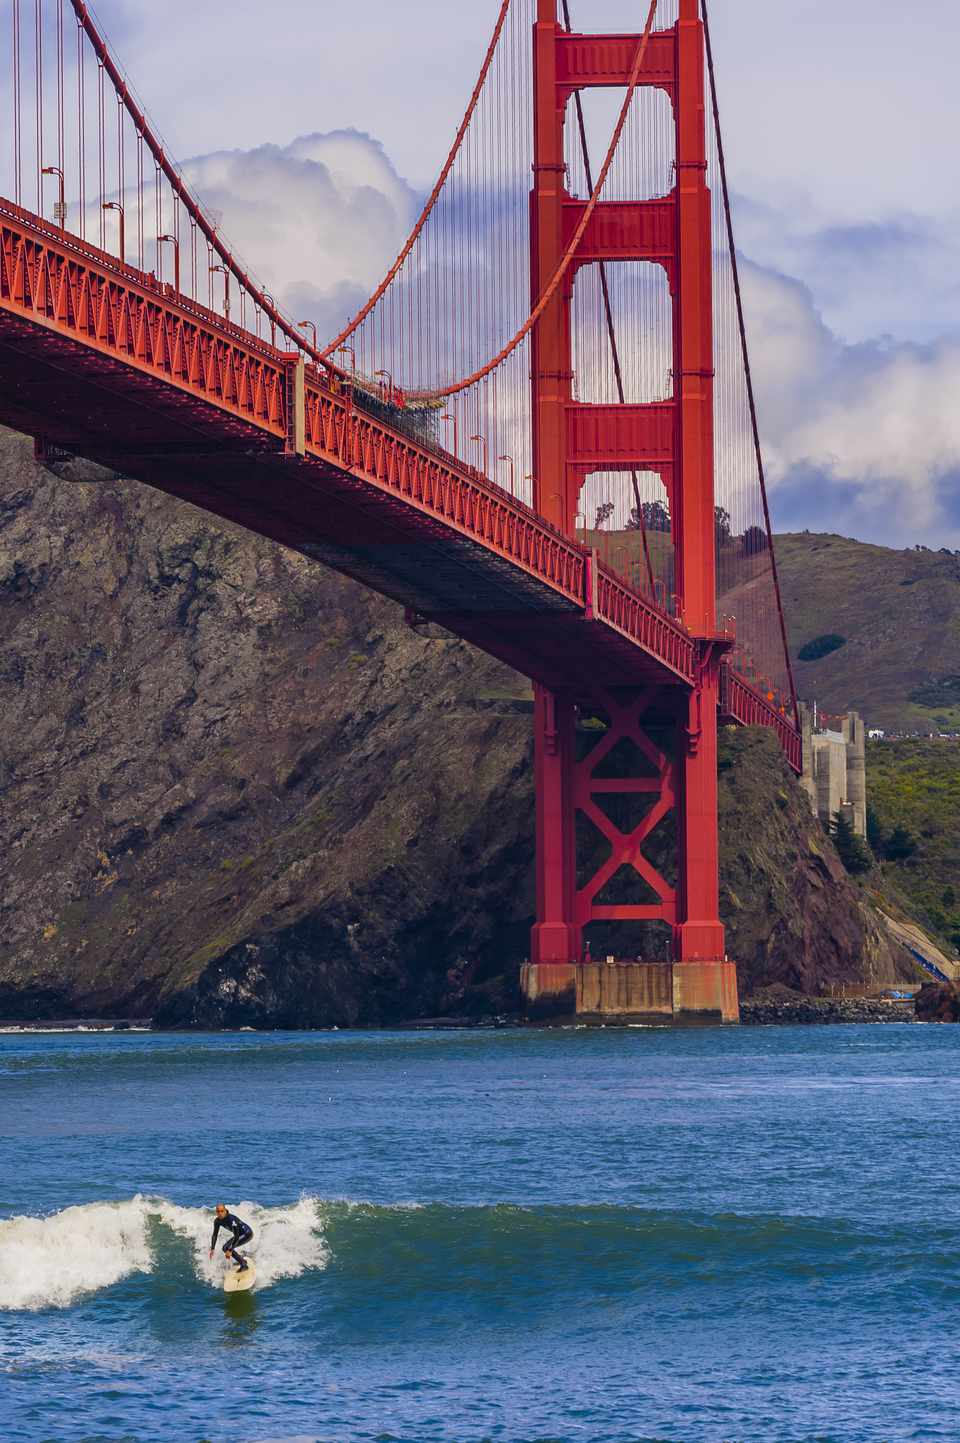 Where to go surfing in San Francisco